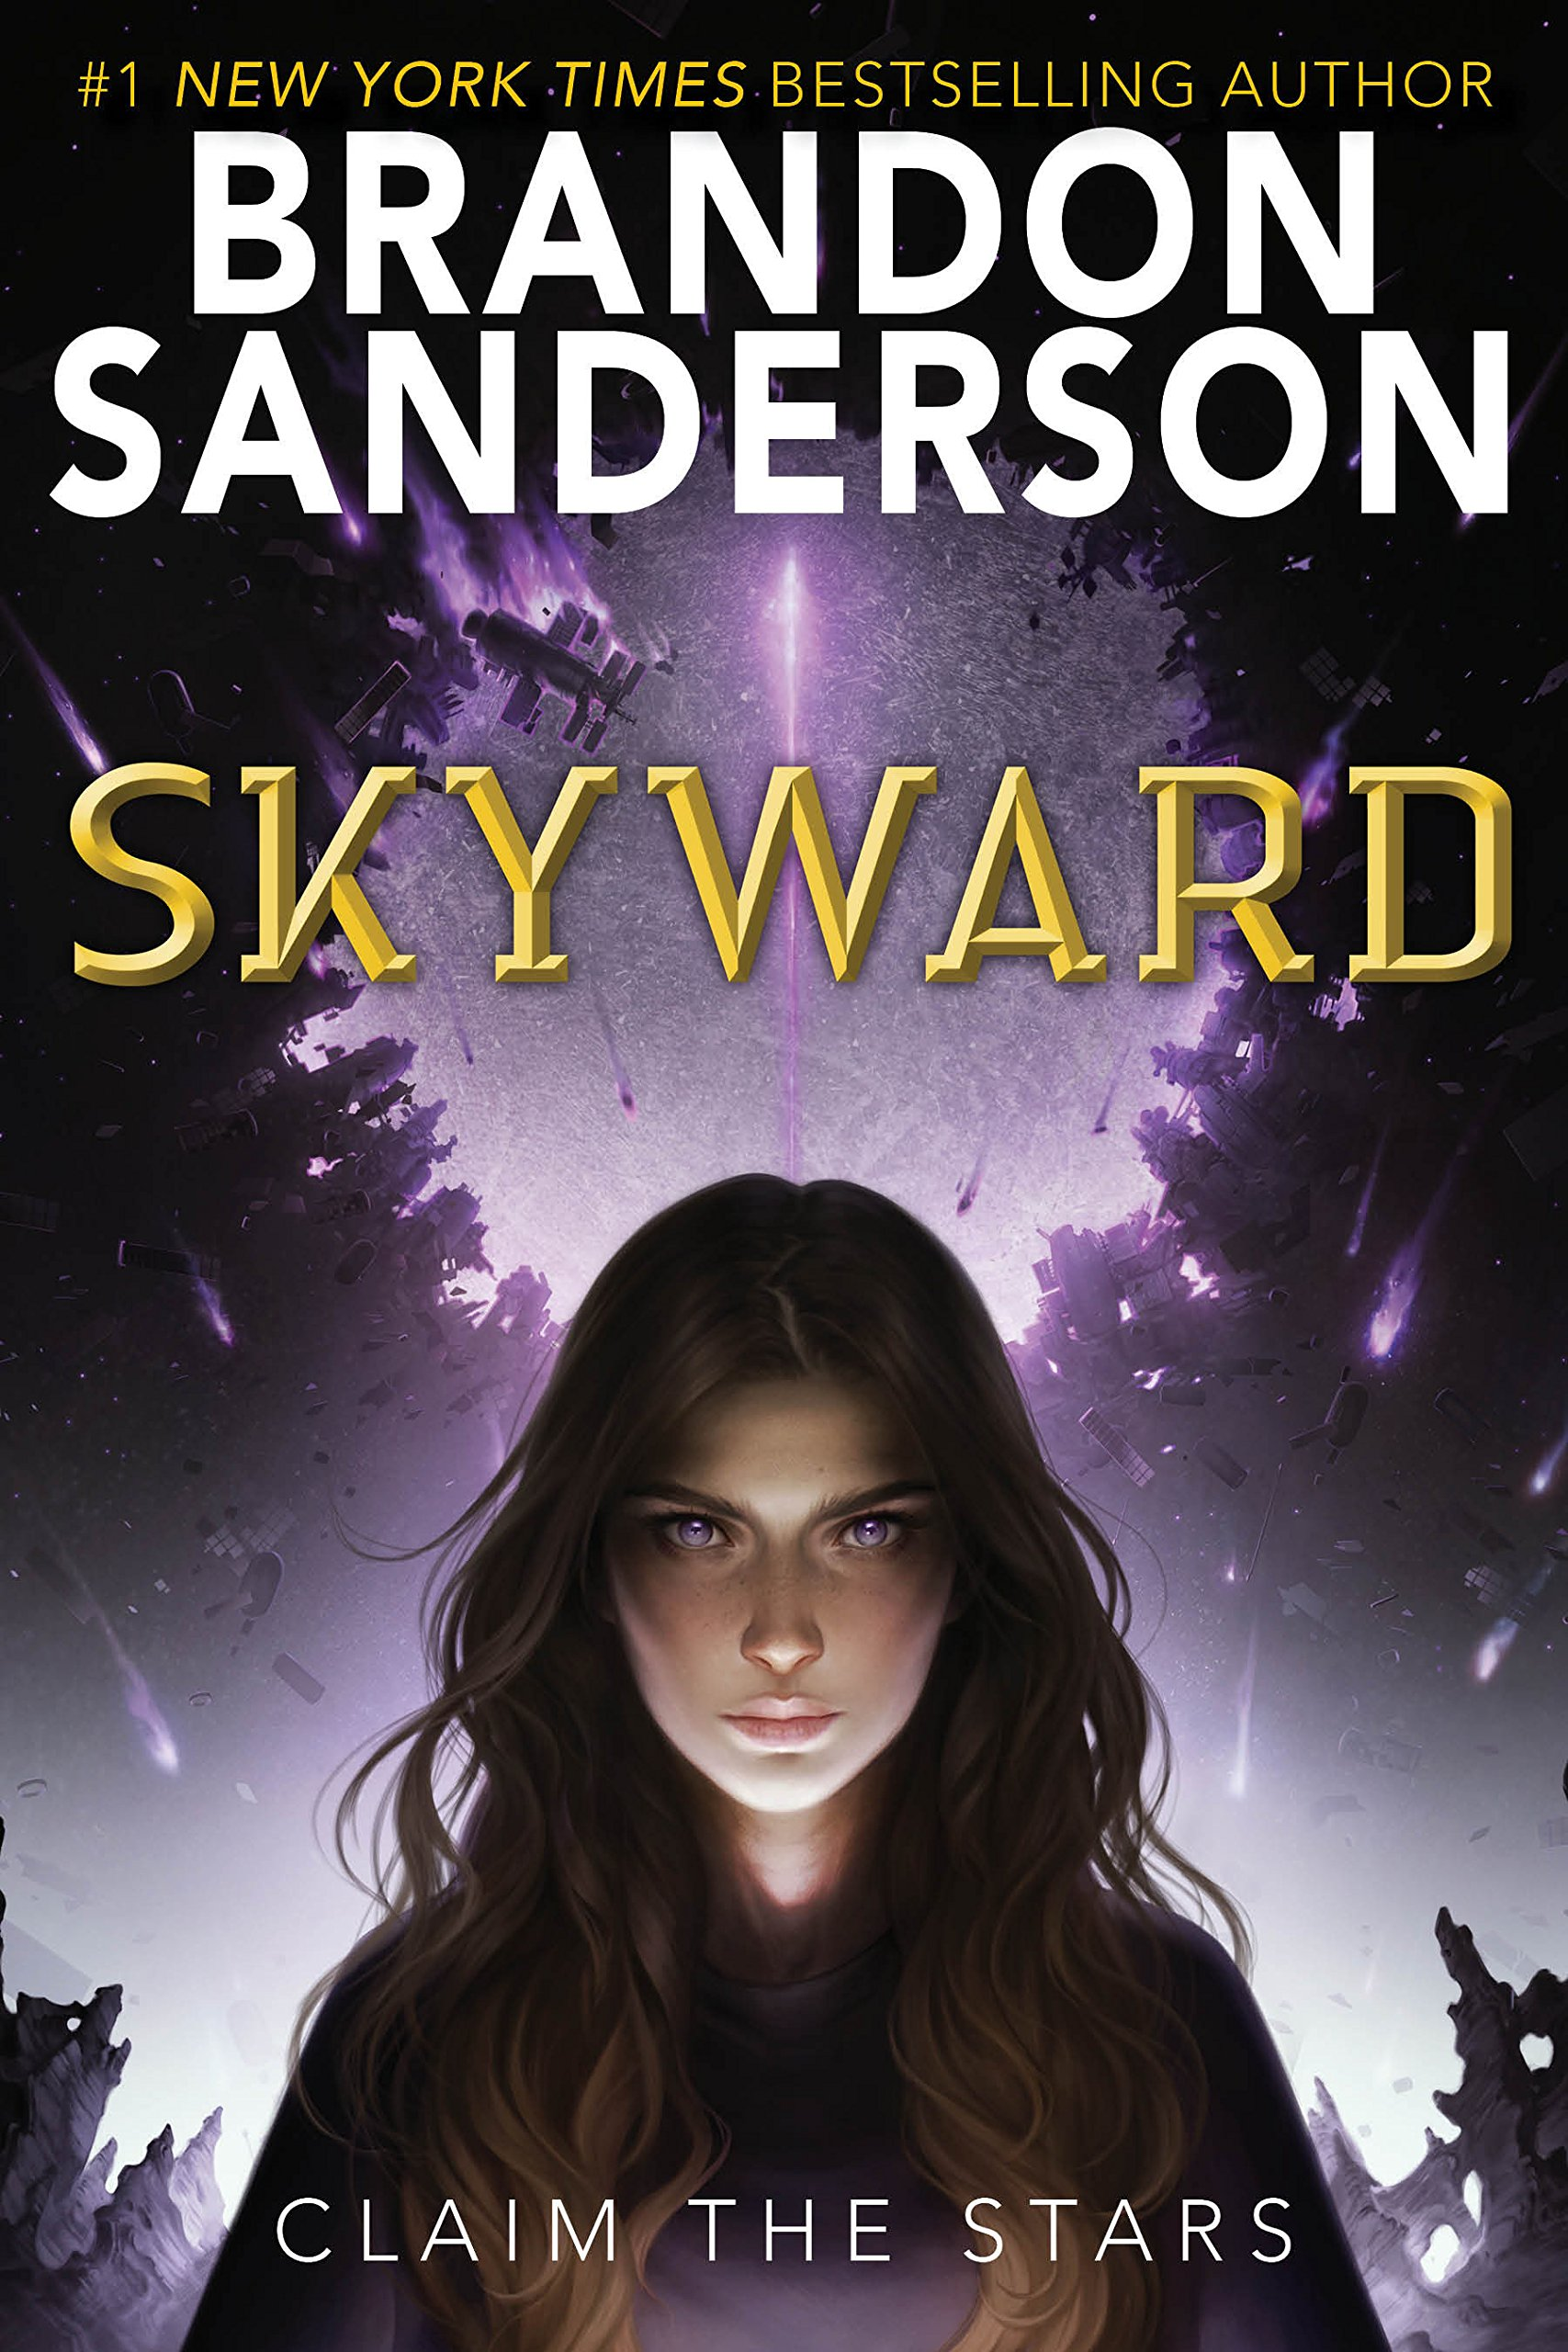 Image result for skyward""